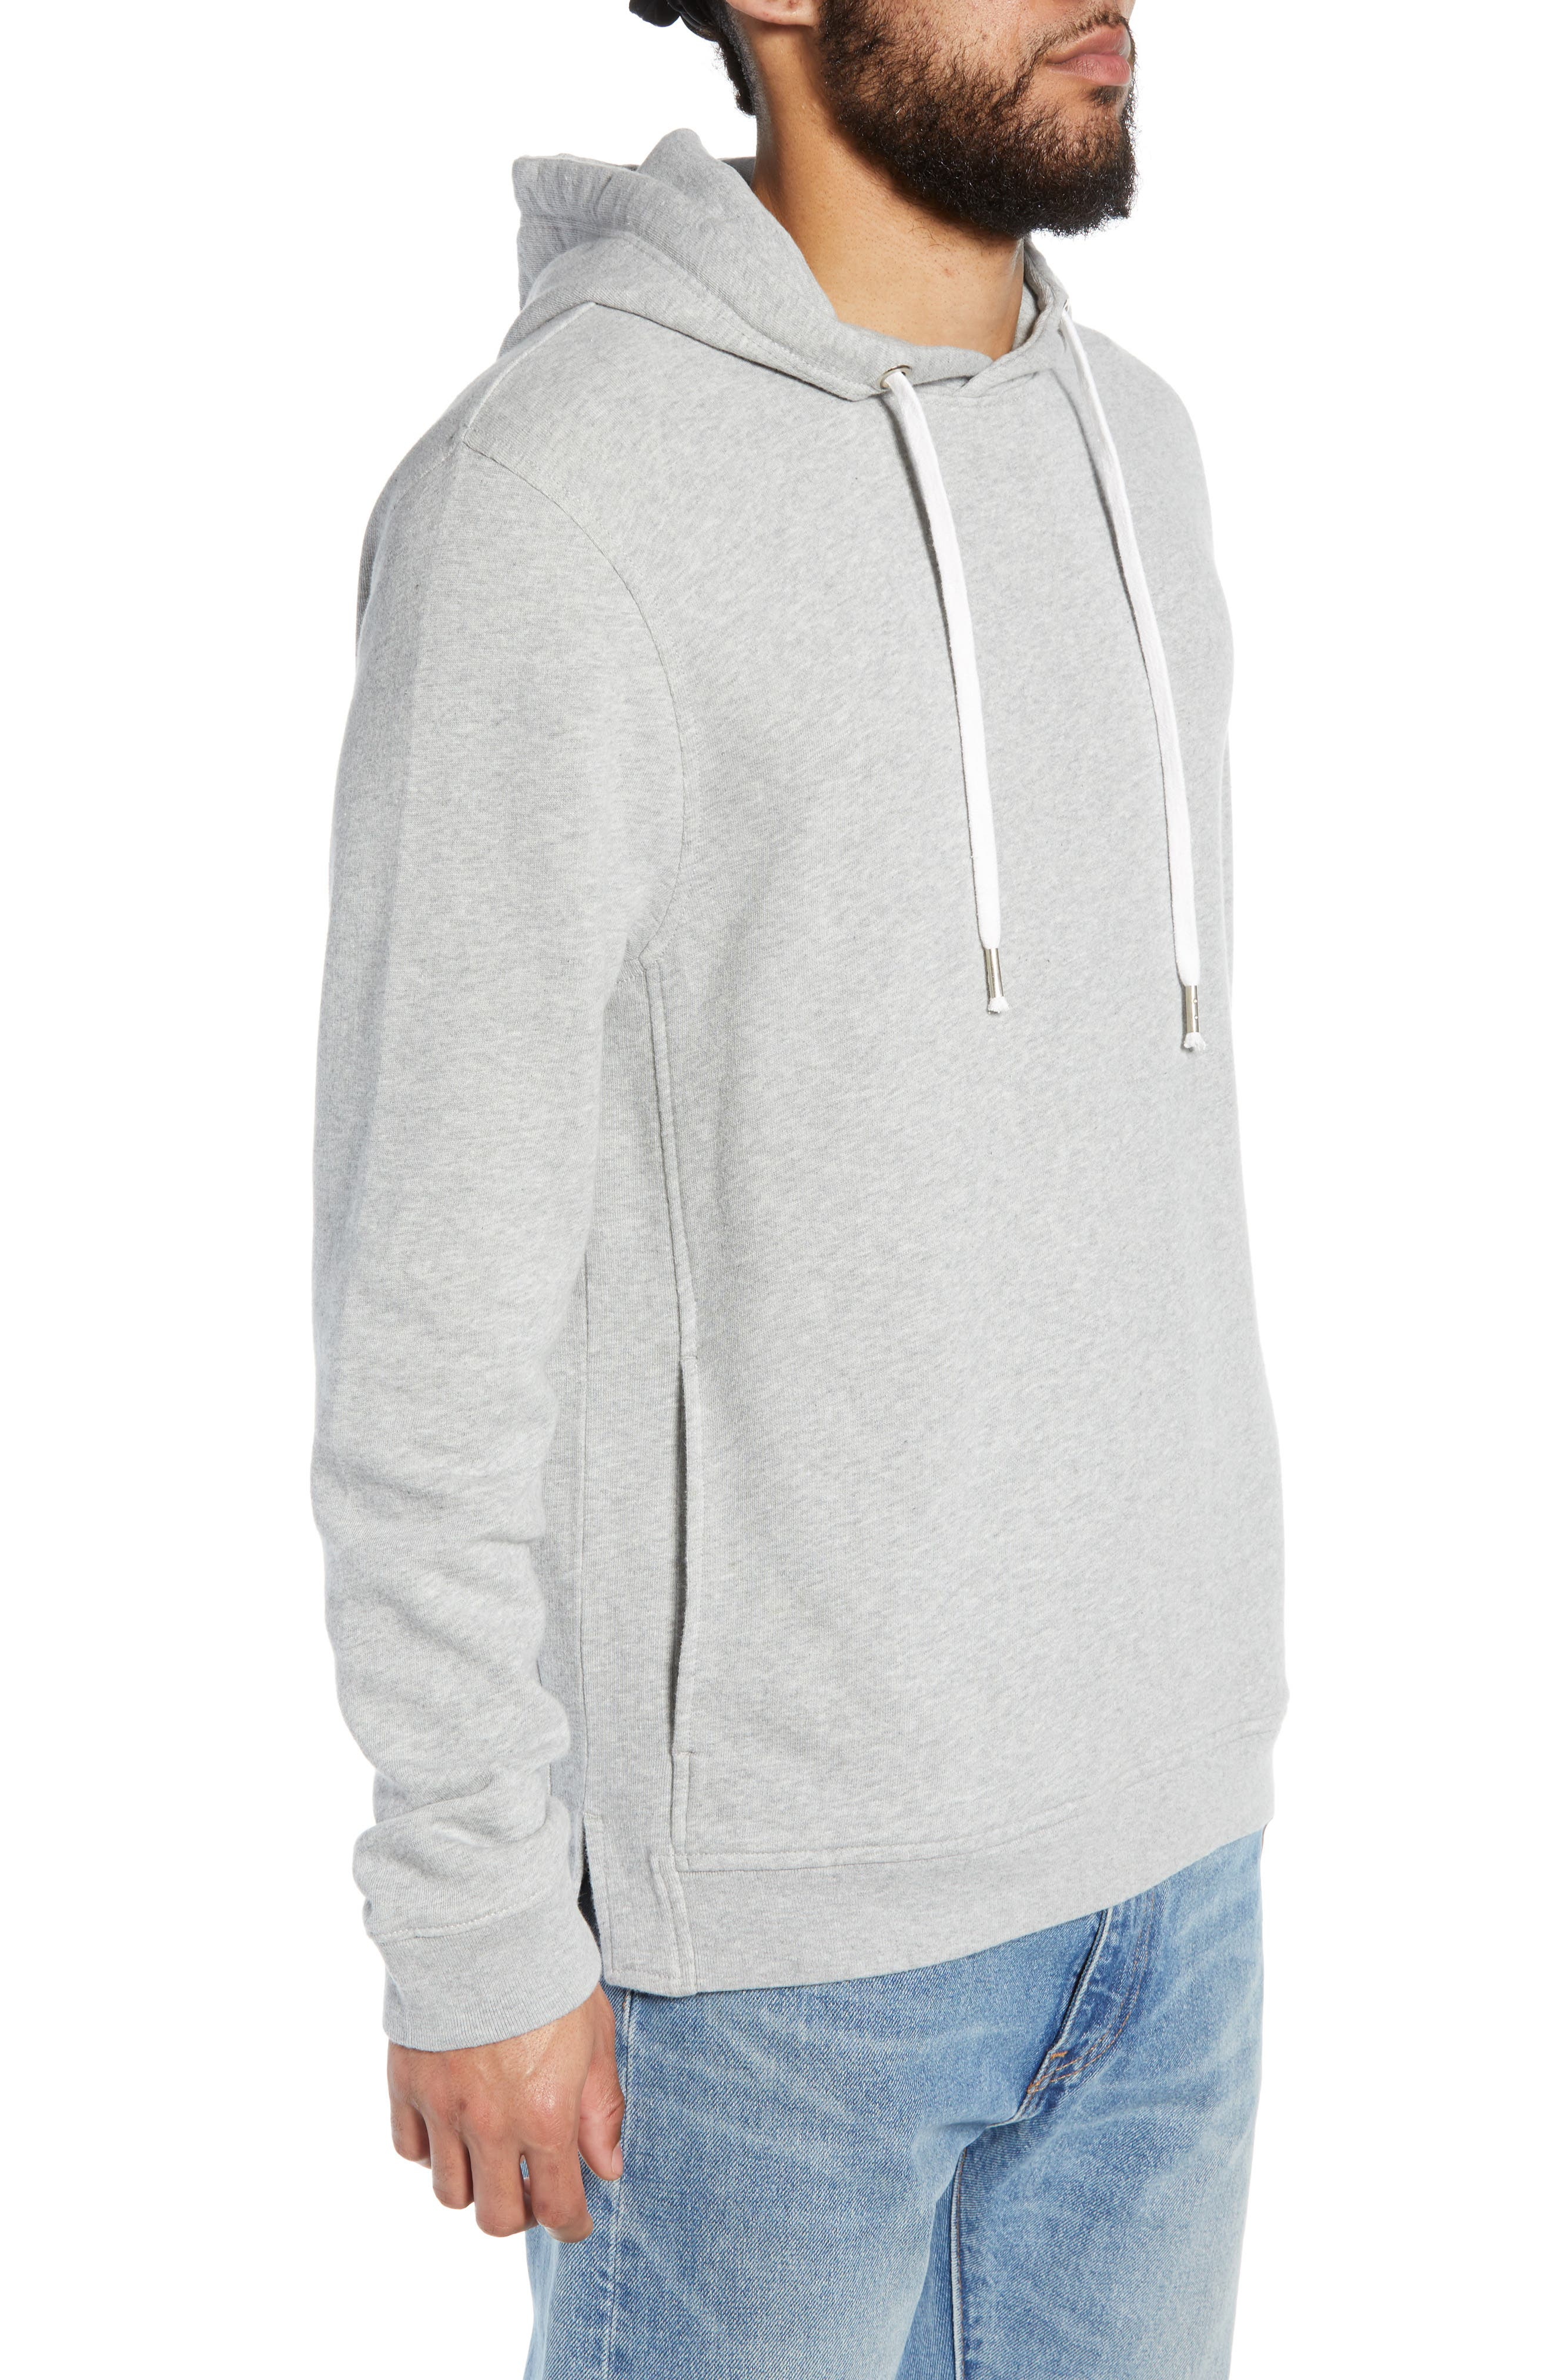 THE RAIL, Heather Sunfaded Hoodie, Alternate thumbnail 3, color, GREY ASH HEATHER